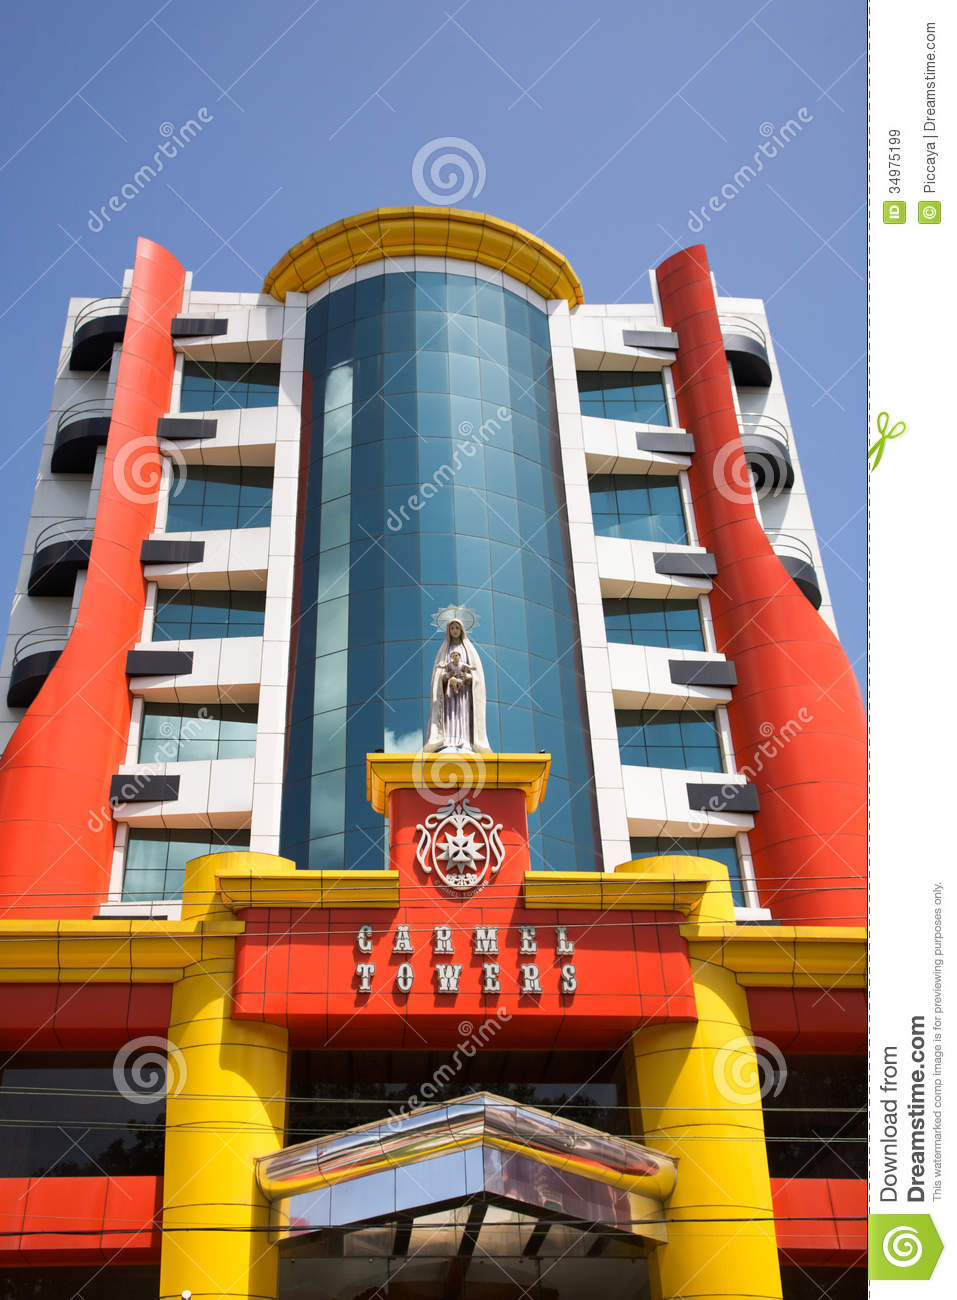 Modern Architecture Of India carmel towers, modern architecture in trivandrum, india. editorial